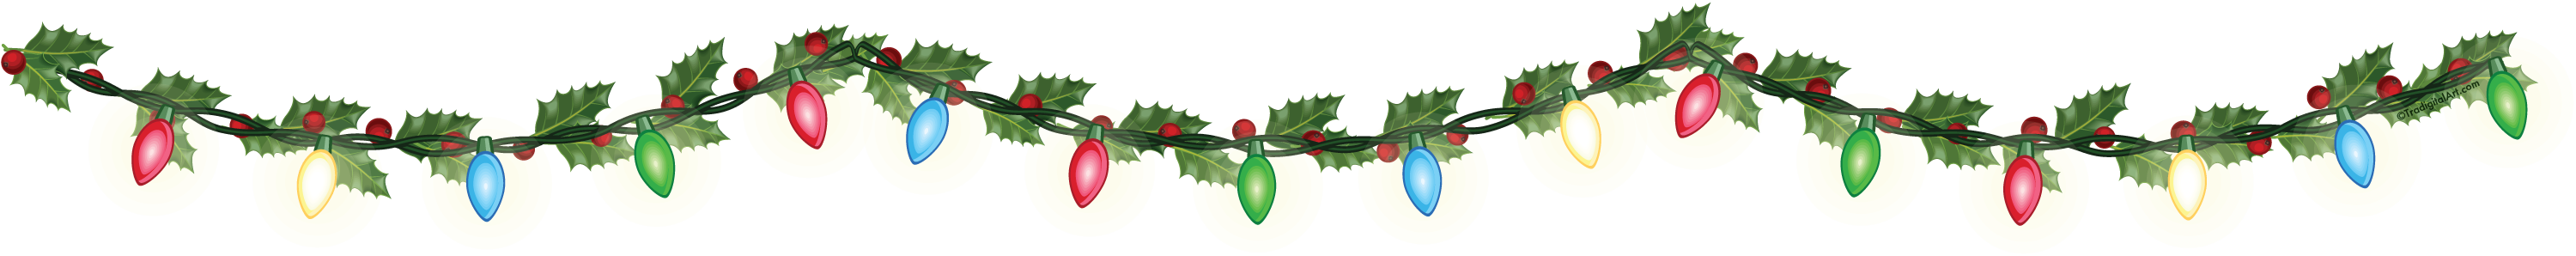 christmas lights free download png